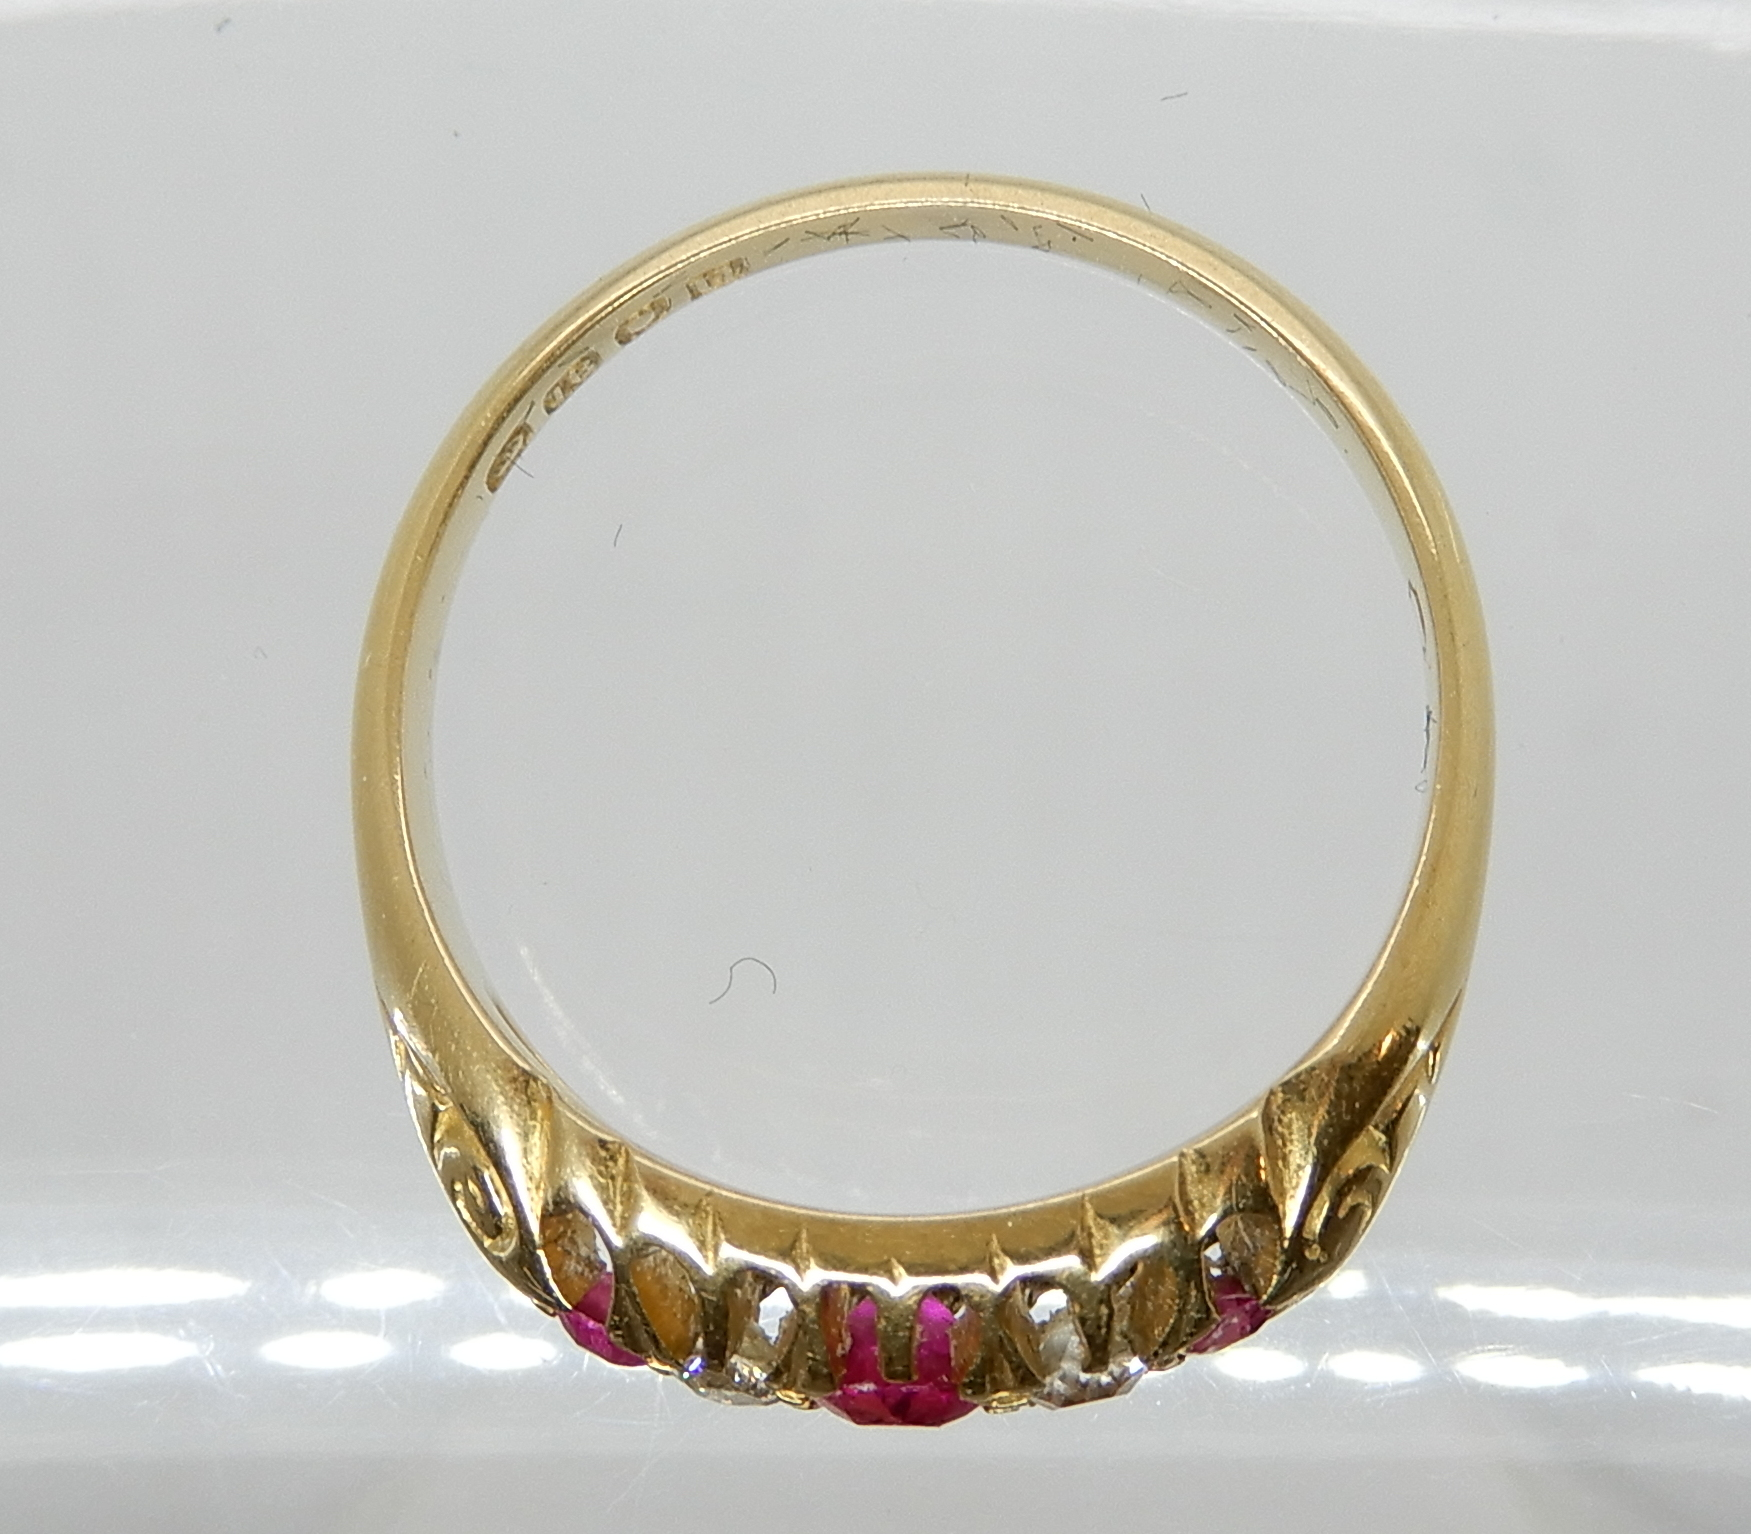 Lot 40 - An 18ct gold diamond and red gem ring, size O, weight 3.7gms Condition Report: Available upon